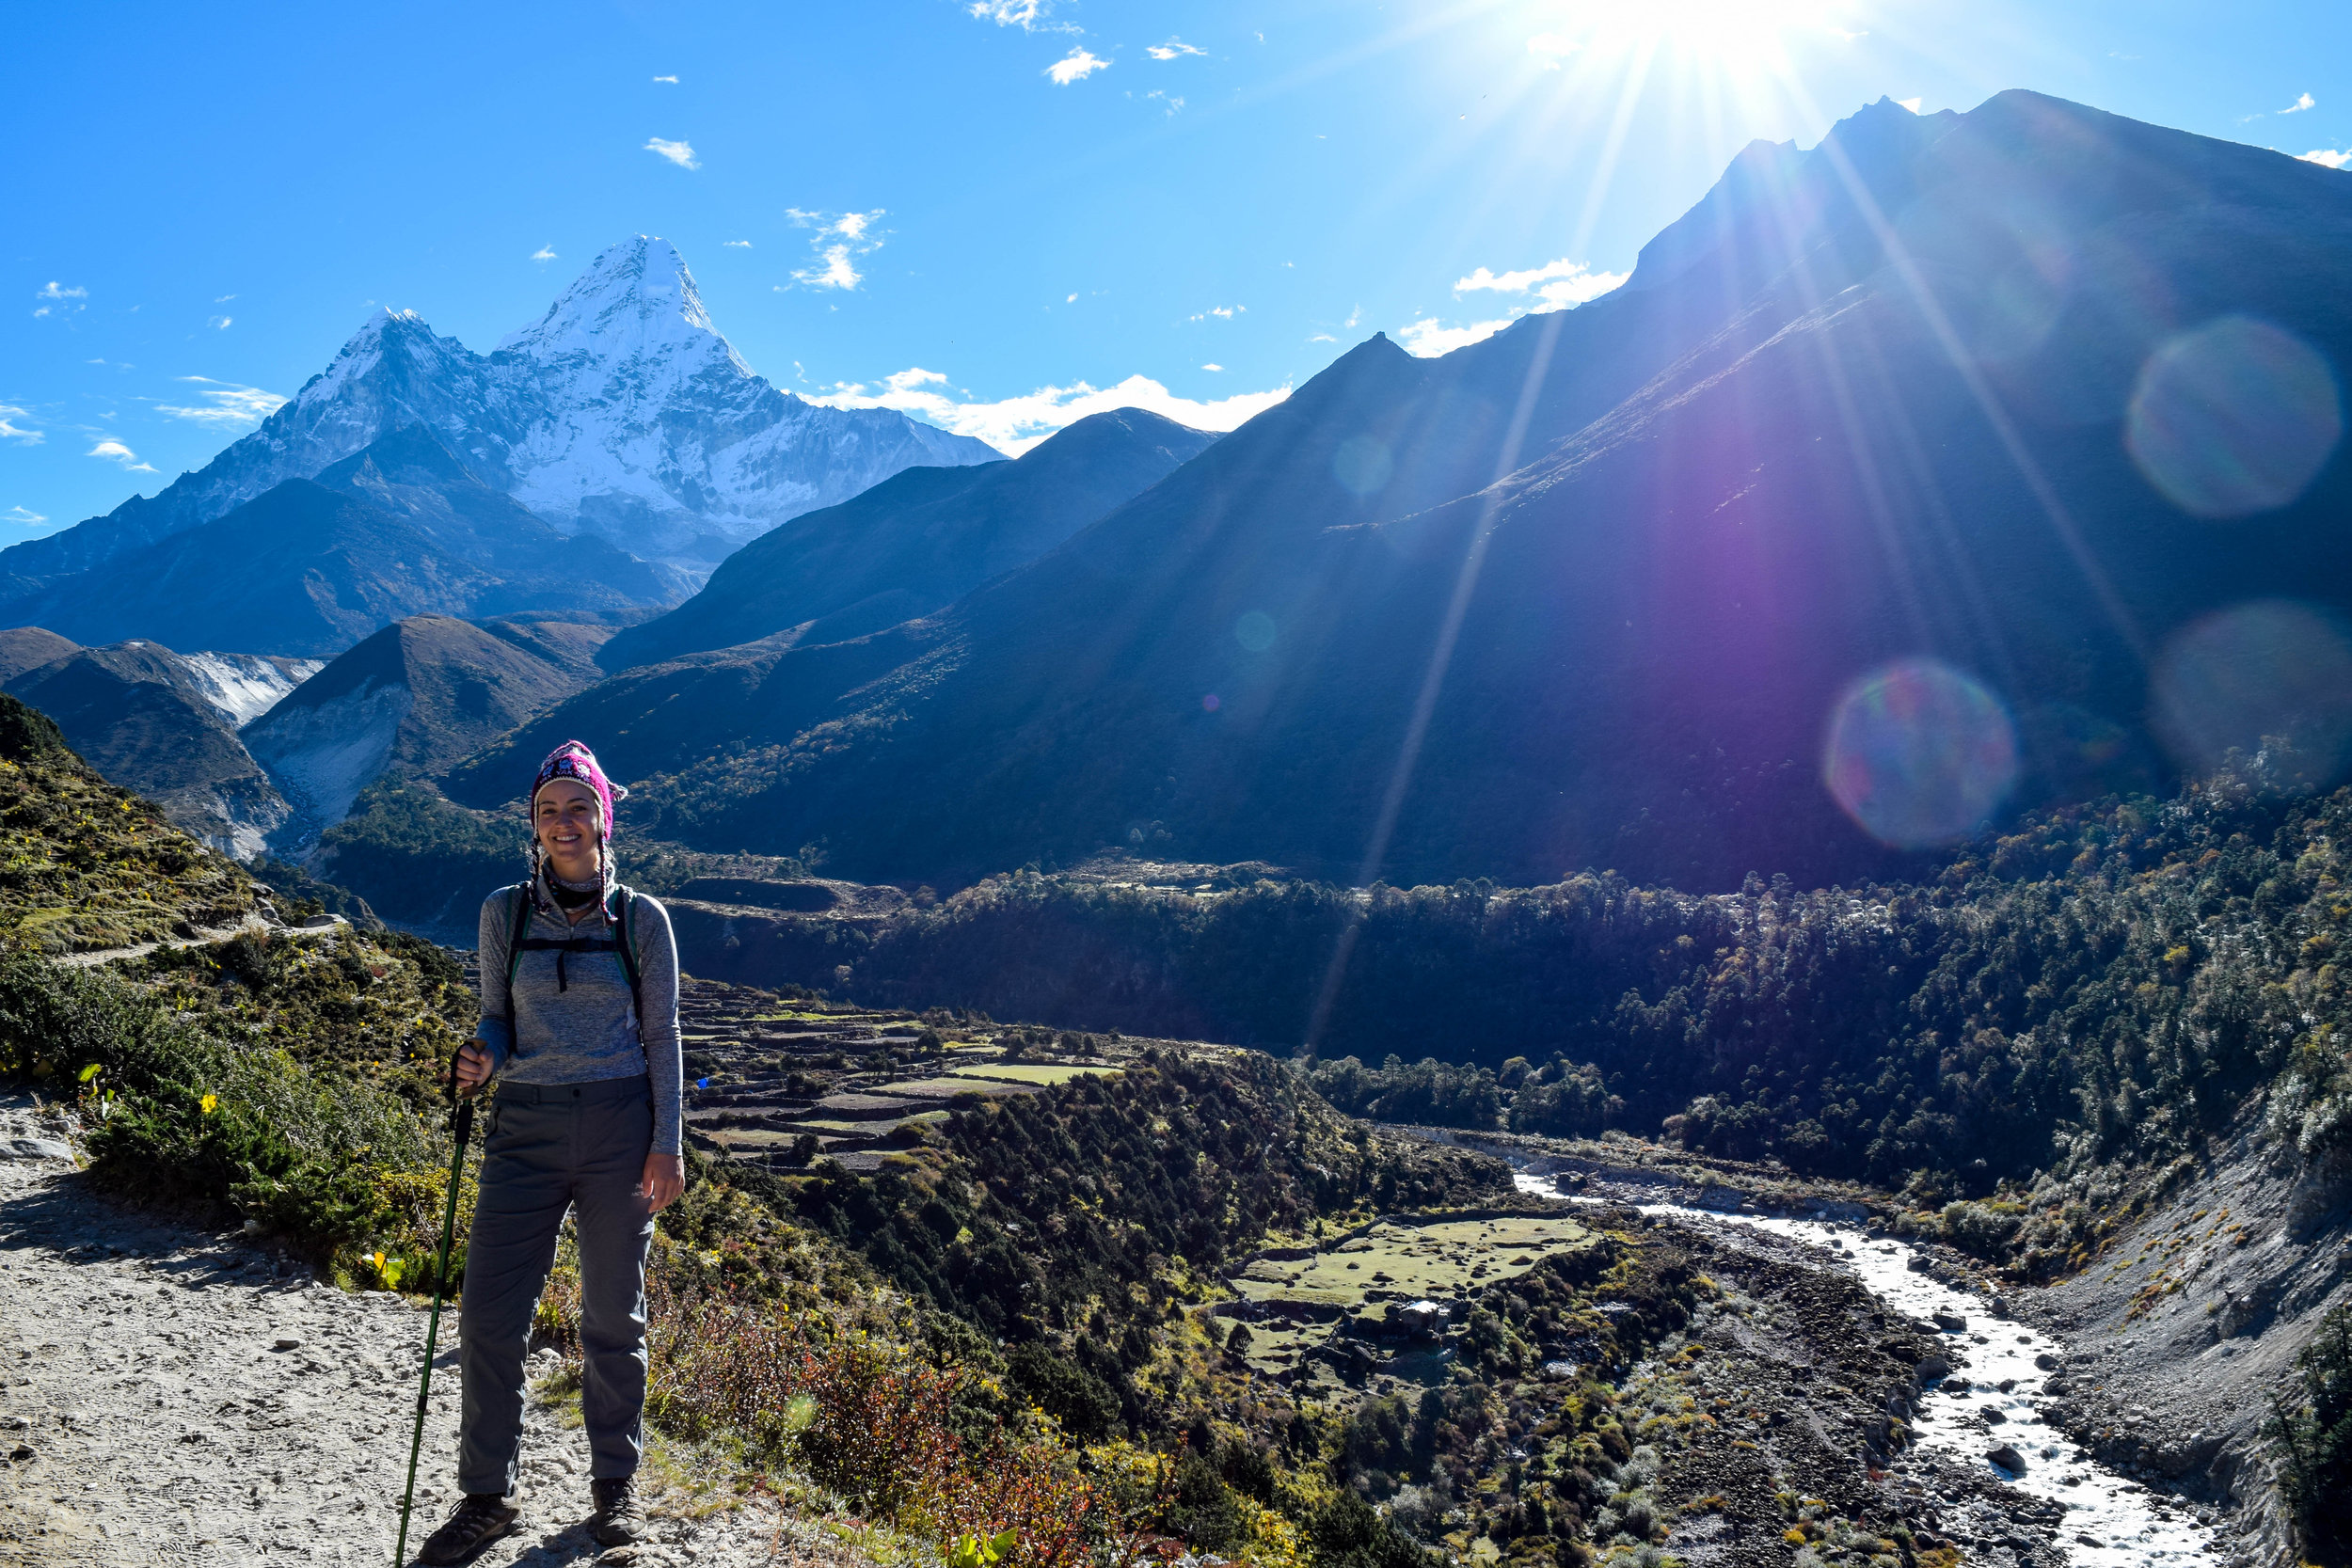 Me and Ama Dablam (Produced by J.J. Abrams)